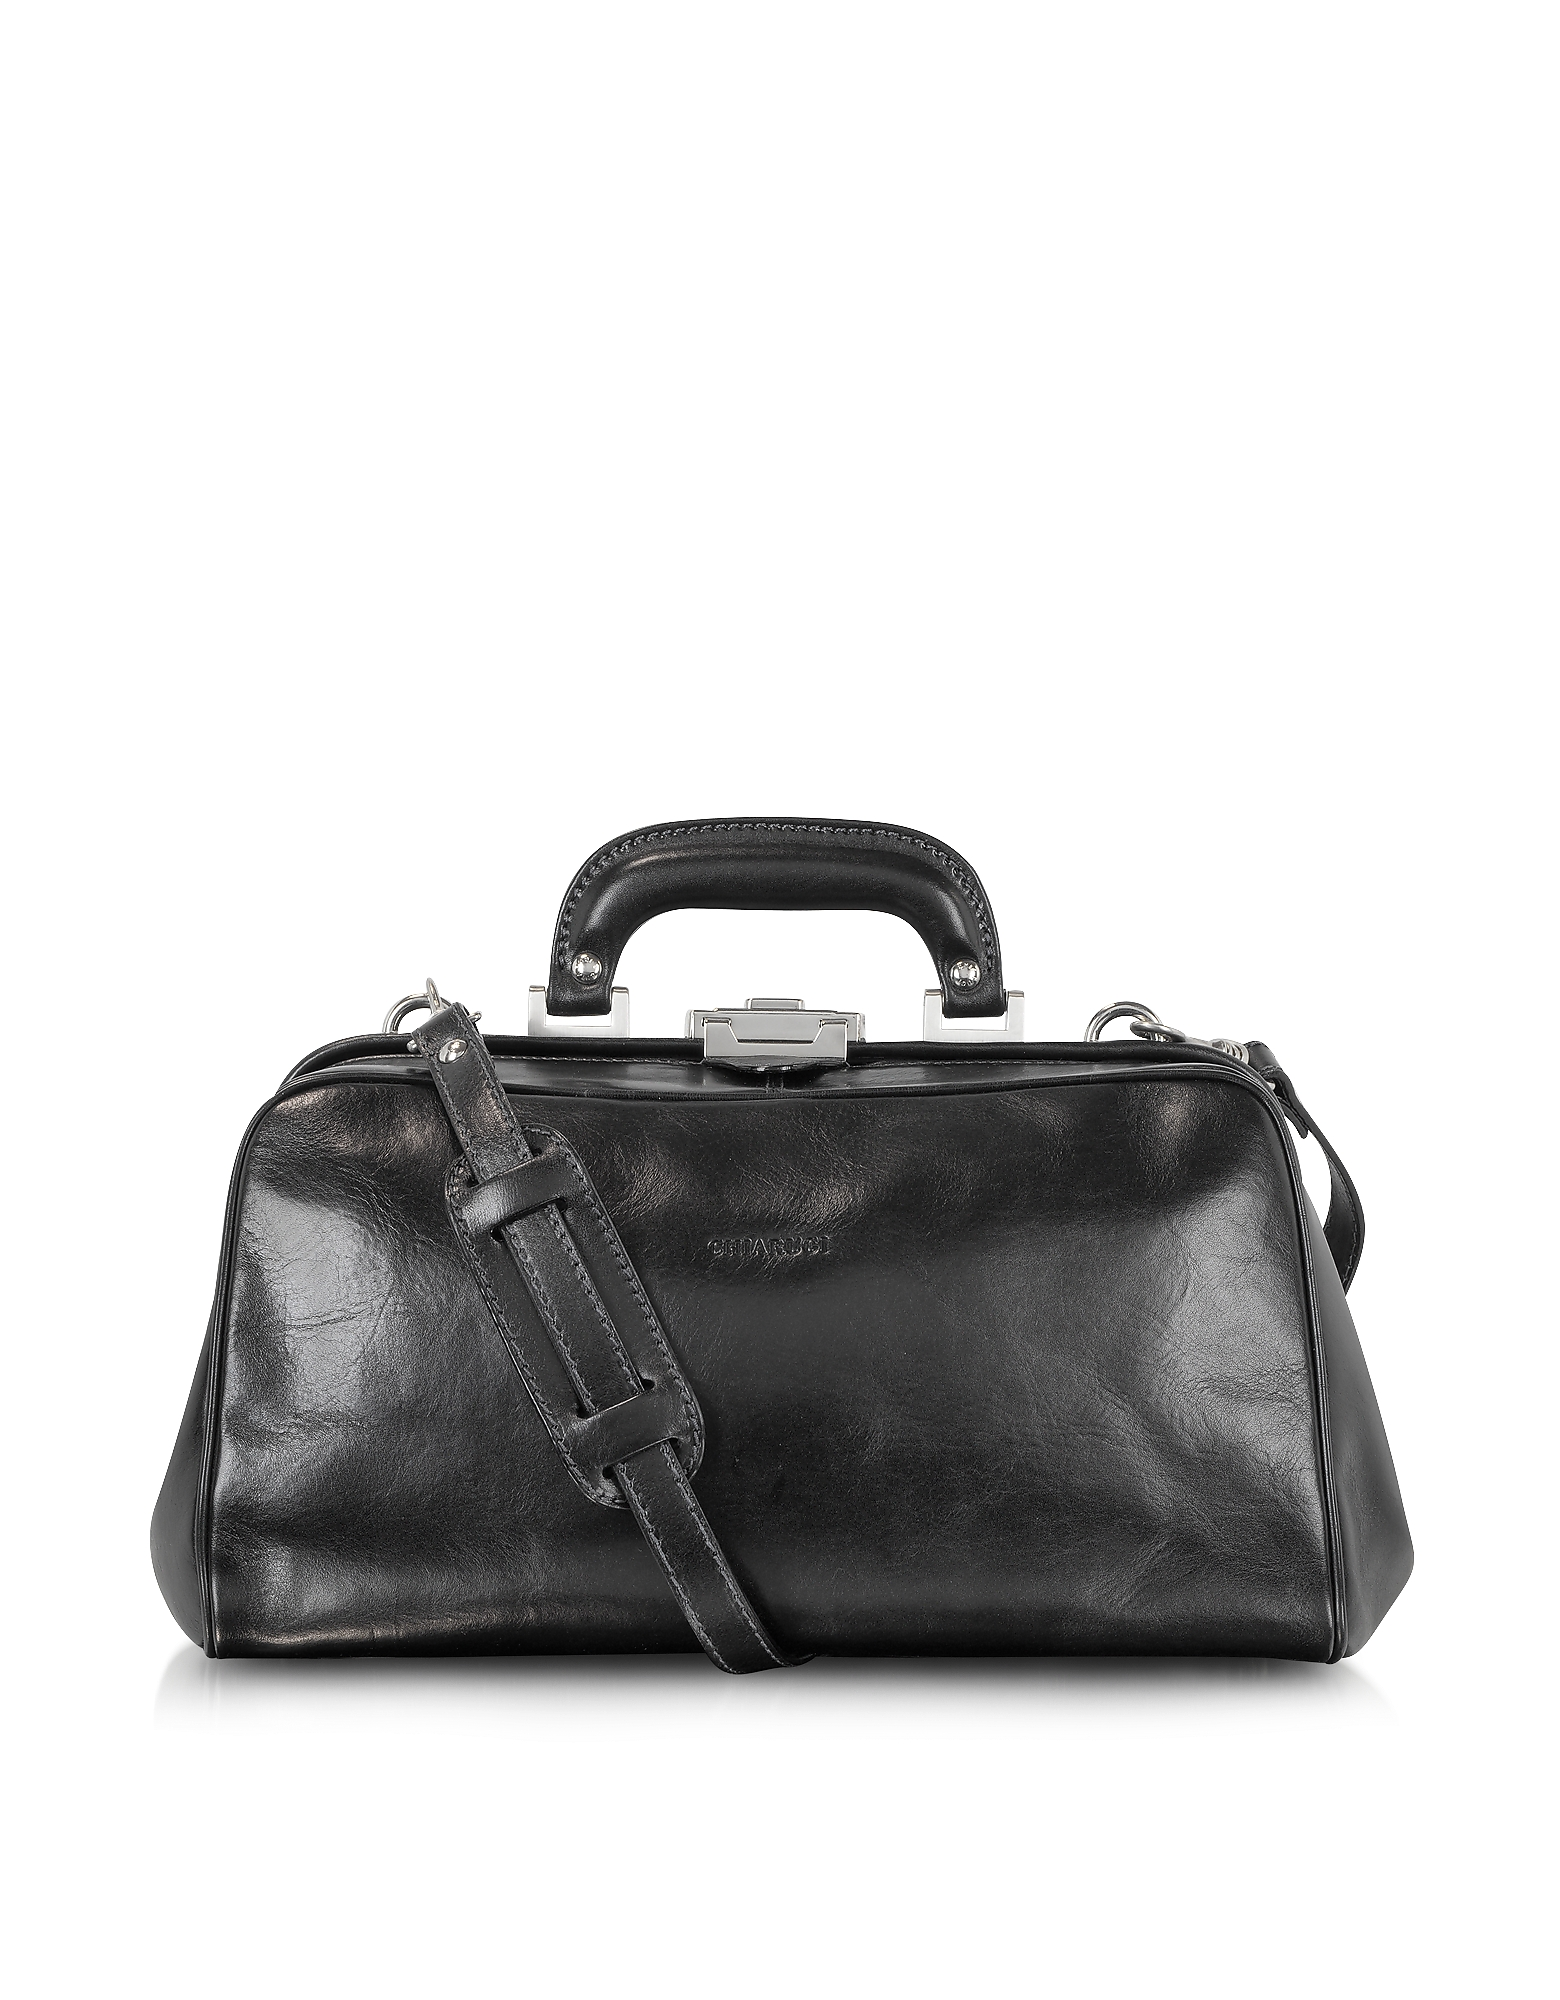 Chiarugi Briefcases, Black Leather Handmade Professional Doctor Bag